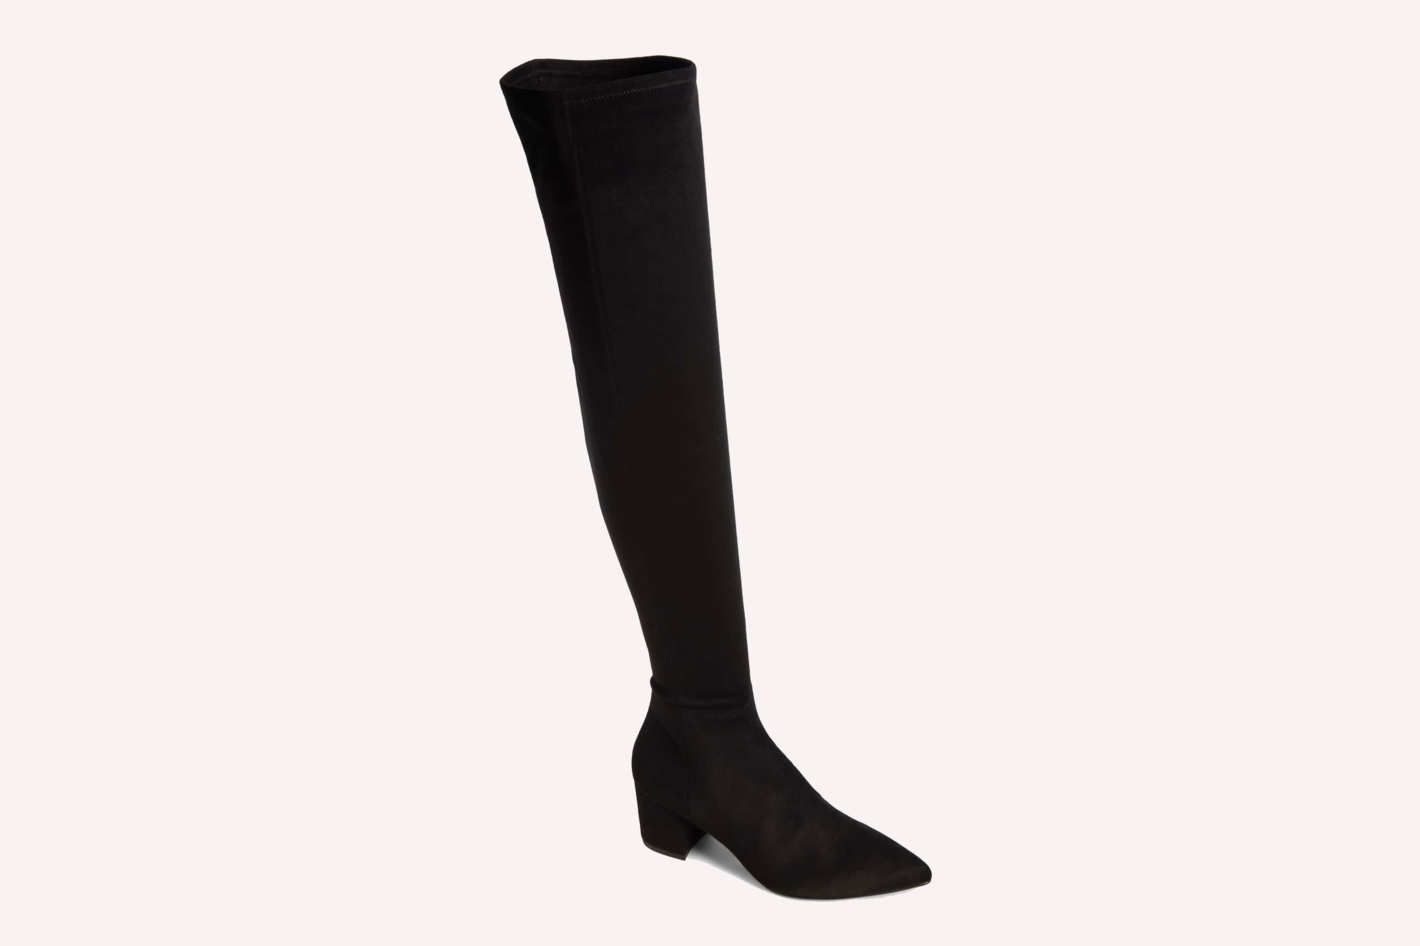 Steve Madden Brinkley Over the Knee Boot